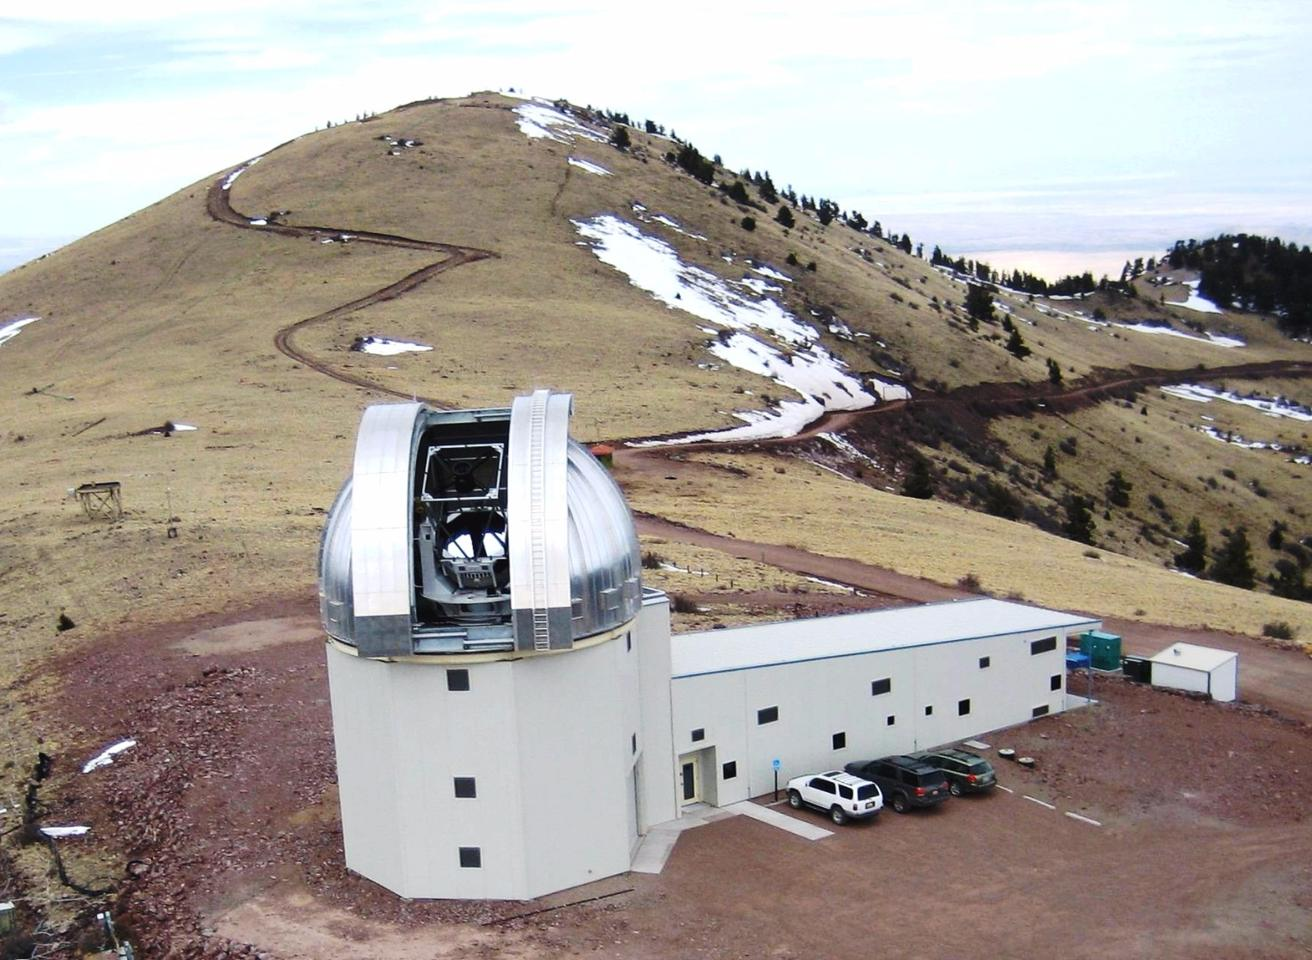 The 2.4-meter telescope facility at Magdalena Ridge Observatory provided astrometric and photometric observations for two months during the 2012 TC4 campaign